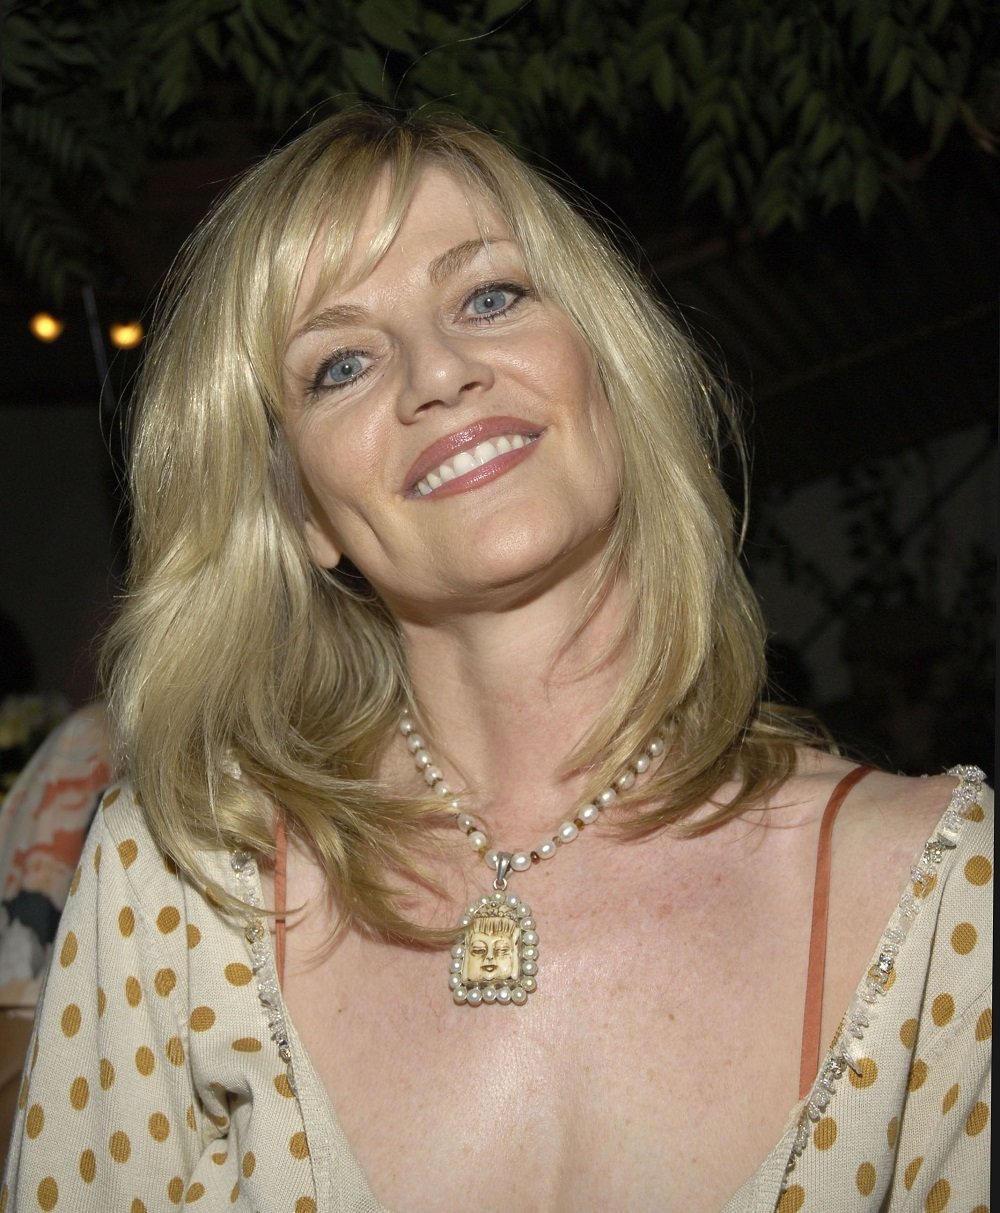 """Martha Smith during the """"Loveless"""" Wrap Party at Falcon in Los Angeles, California on August 10, 2005   Photo: John Heller/WireImage/Getty Images"""